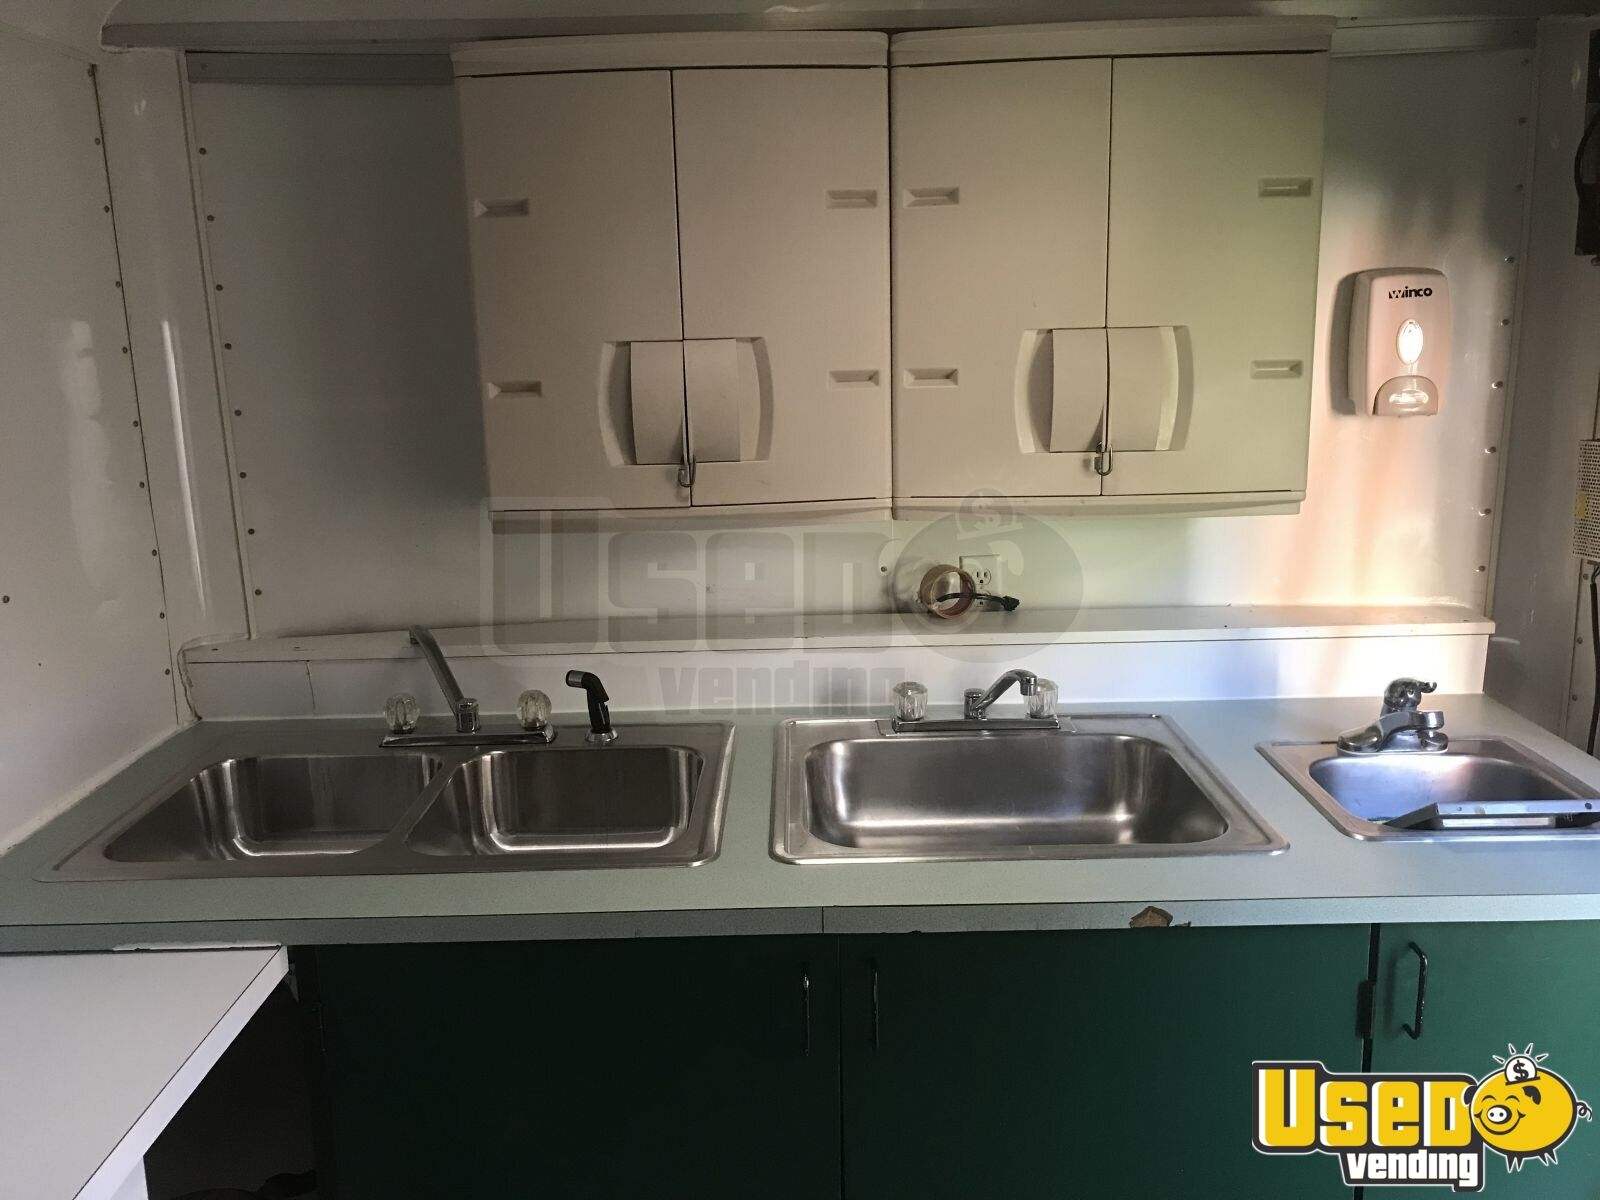 2000 Food Concession Trailer Kitchen Food Trailer Upright Freezer Iowa for Sale - 9